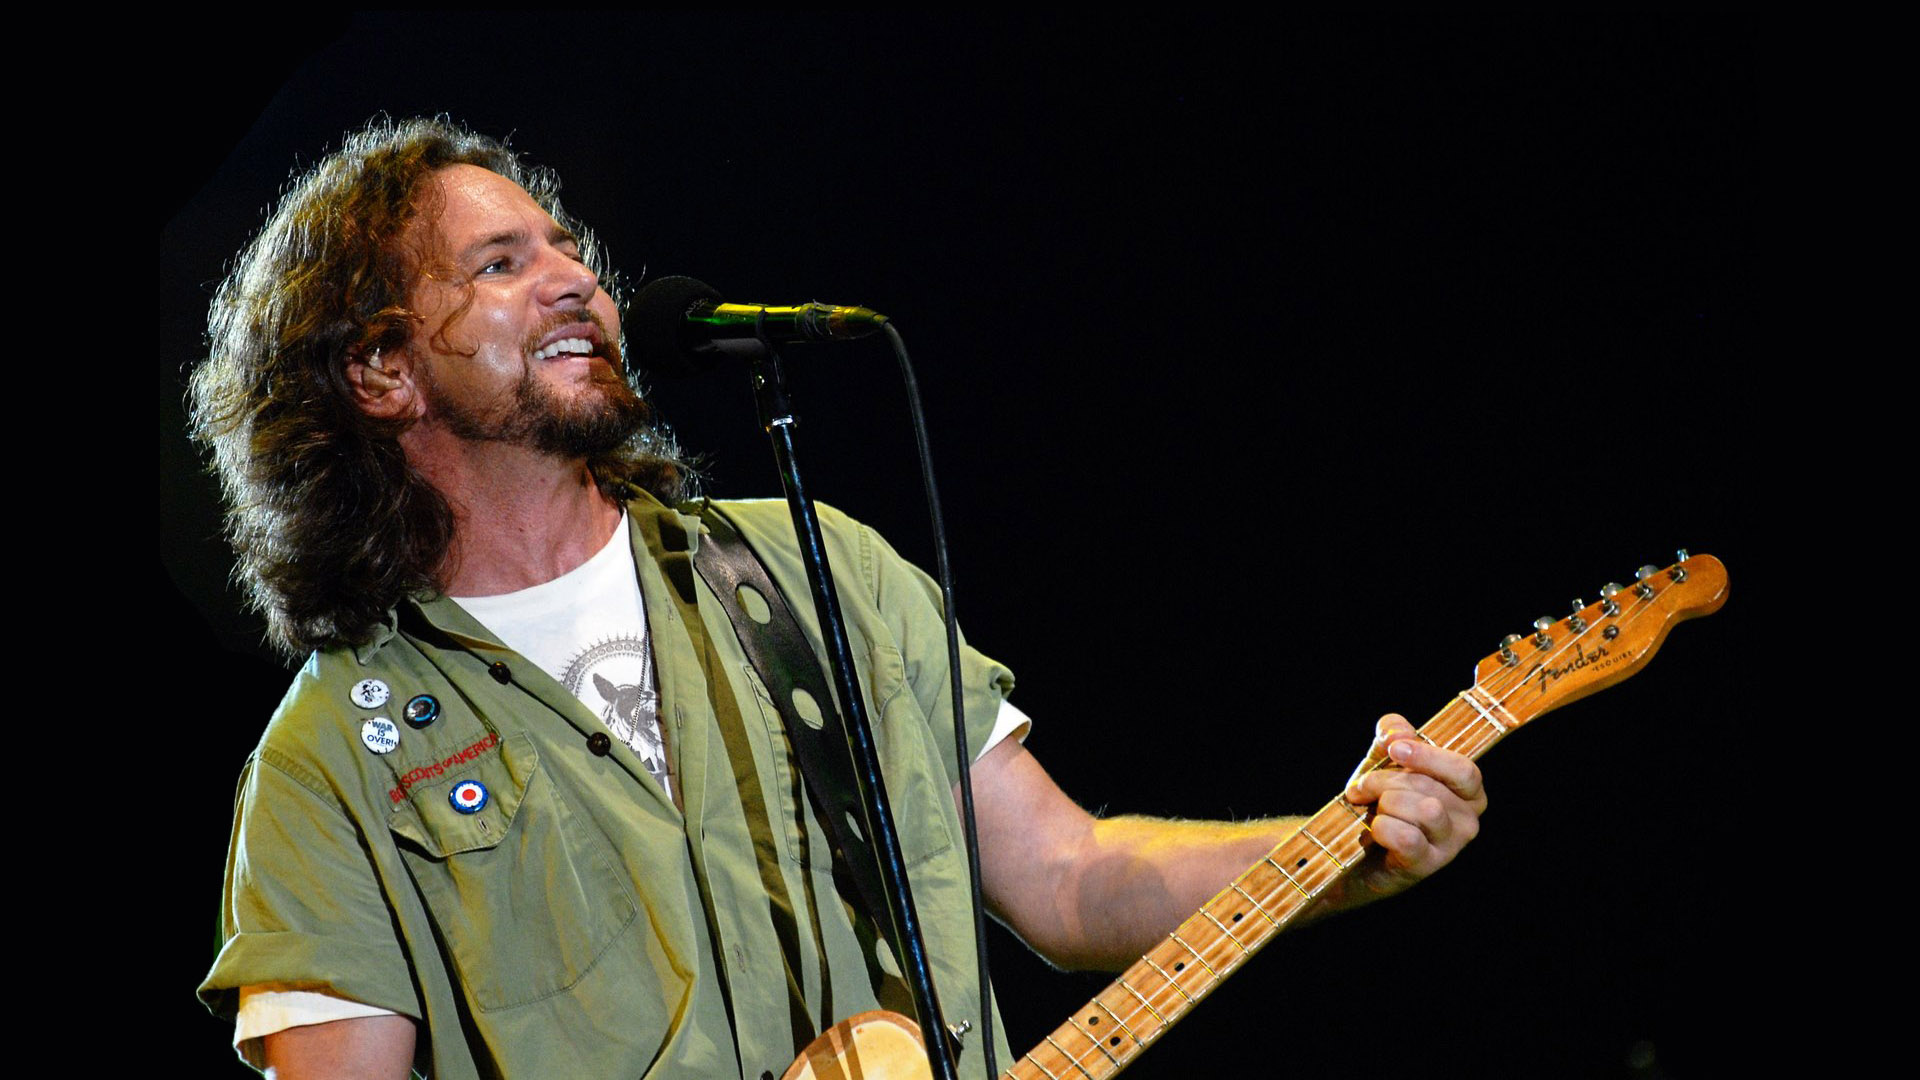 Hd Wallpapers Simple Girl 3 Eddie Vedder Hd Wallpapers Backgrounds Wallpaper Abyss